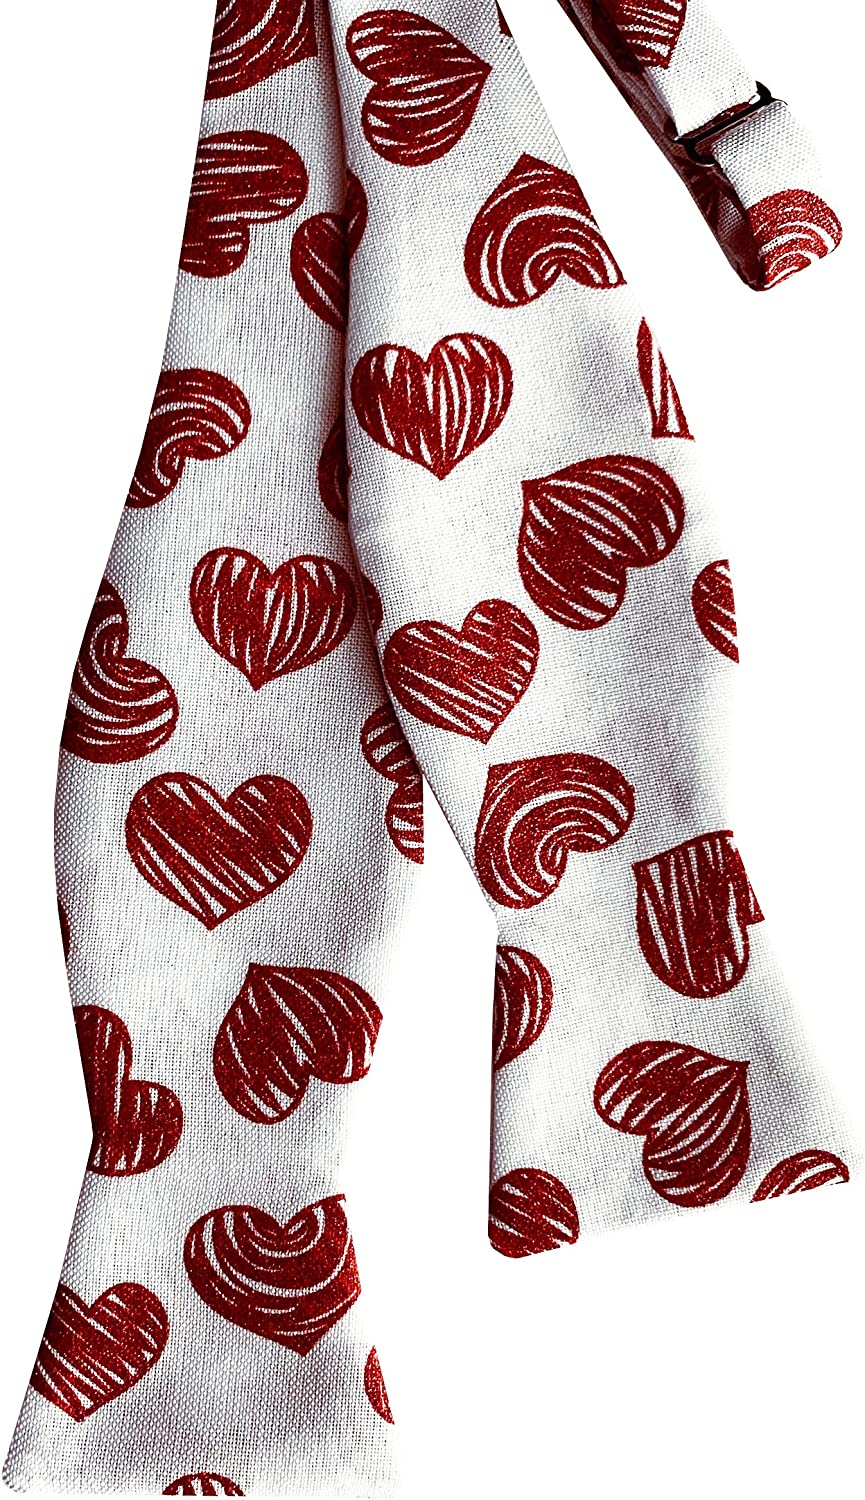 Men/'s and Boys Sizing Valentine Sweetheart Tiny Heart with Gold and Silver Metallic Design Handcrafted in the USA Self-Tie Bow Tie